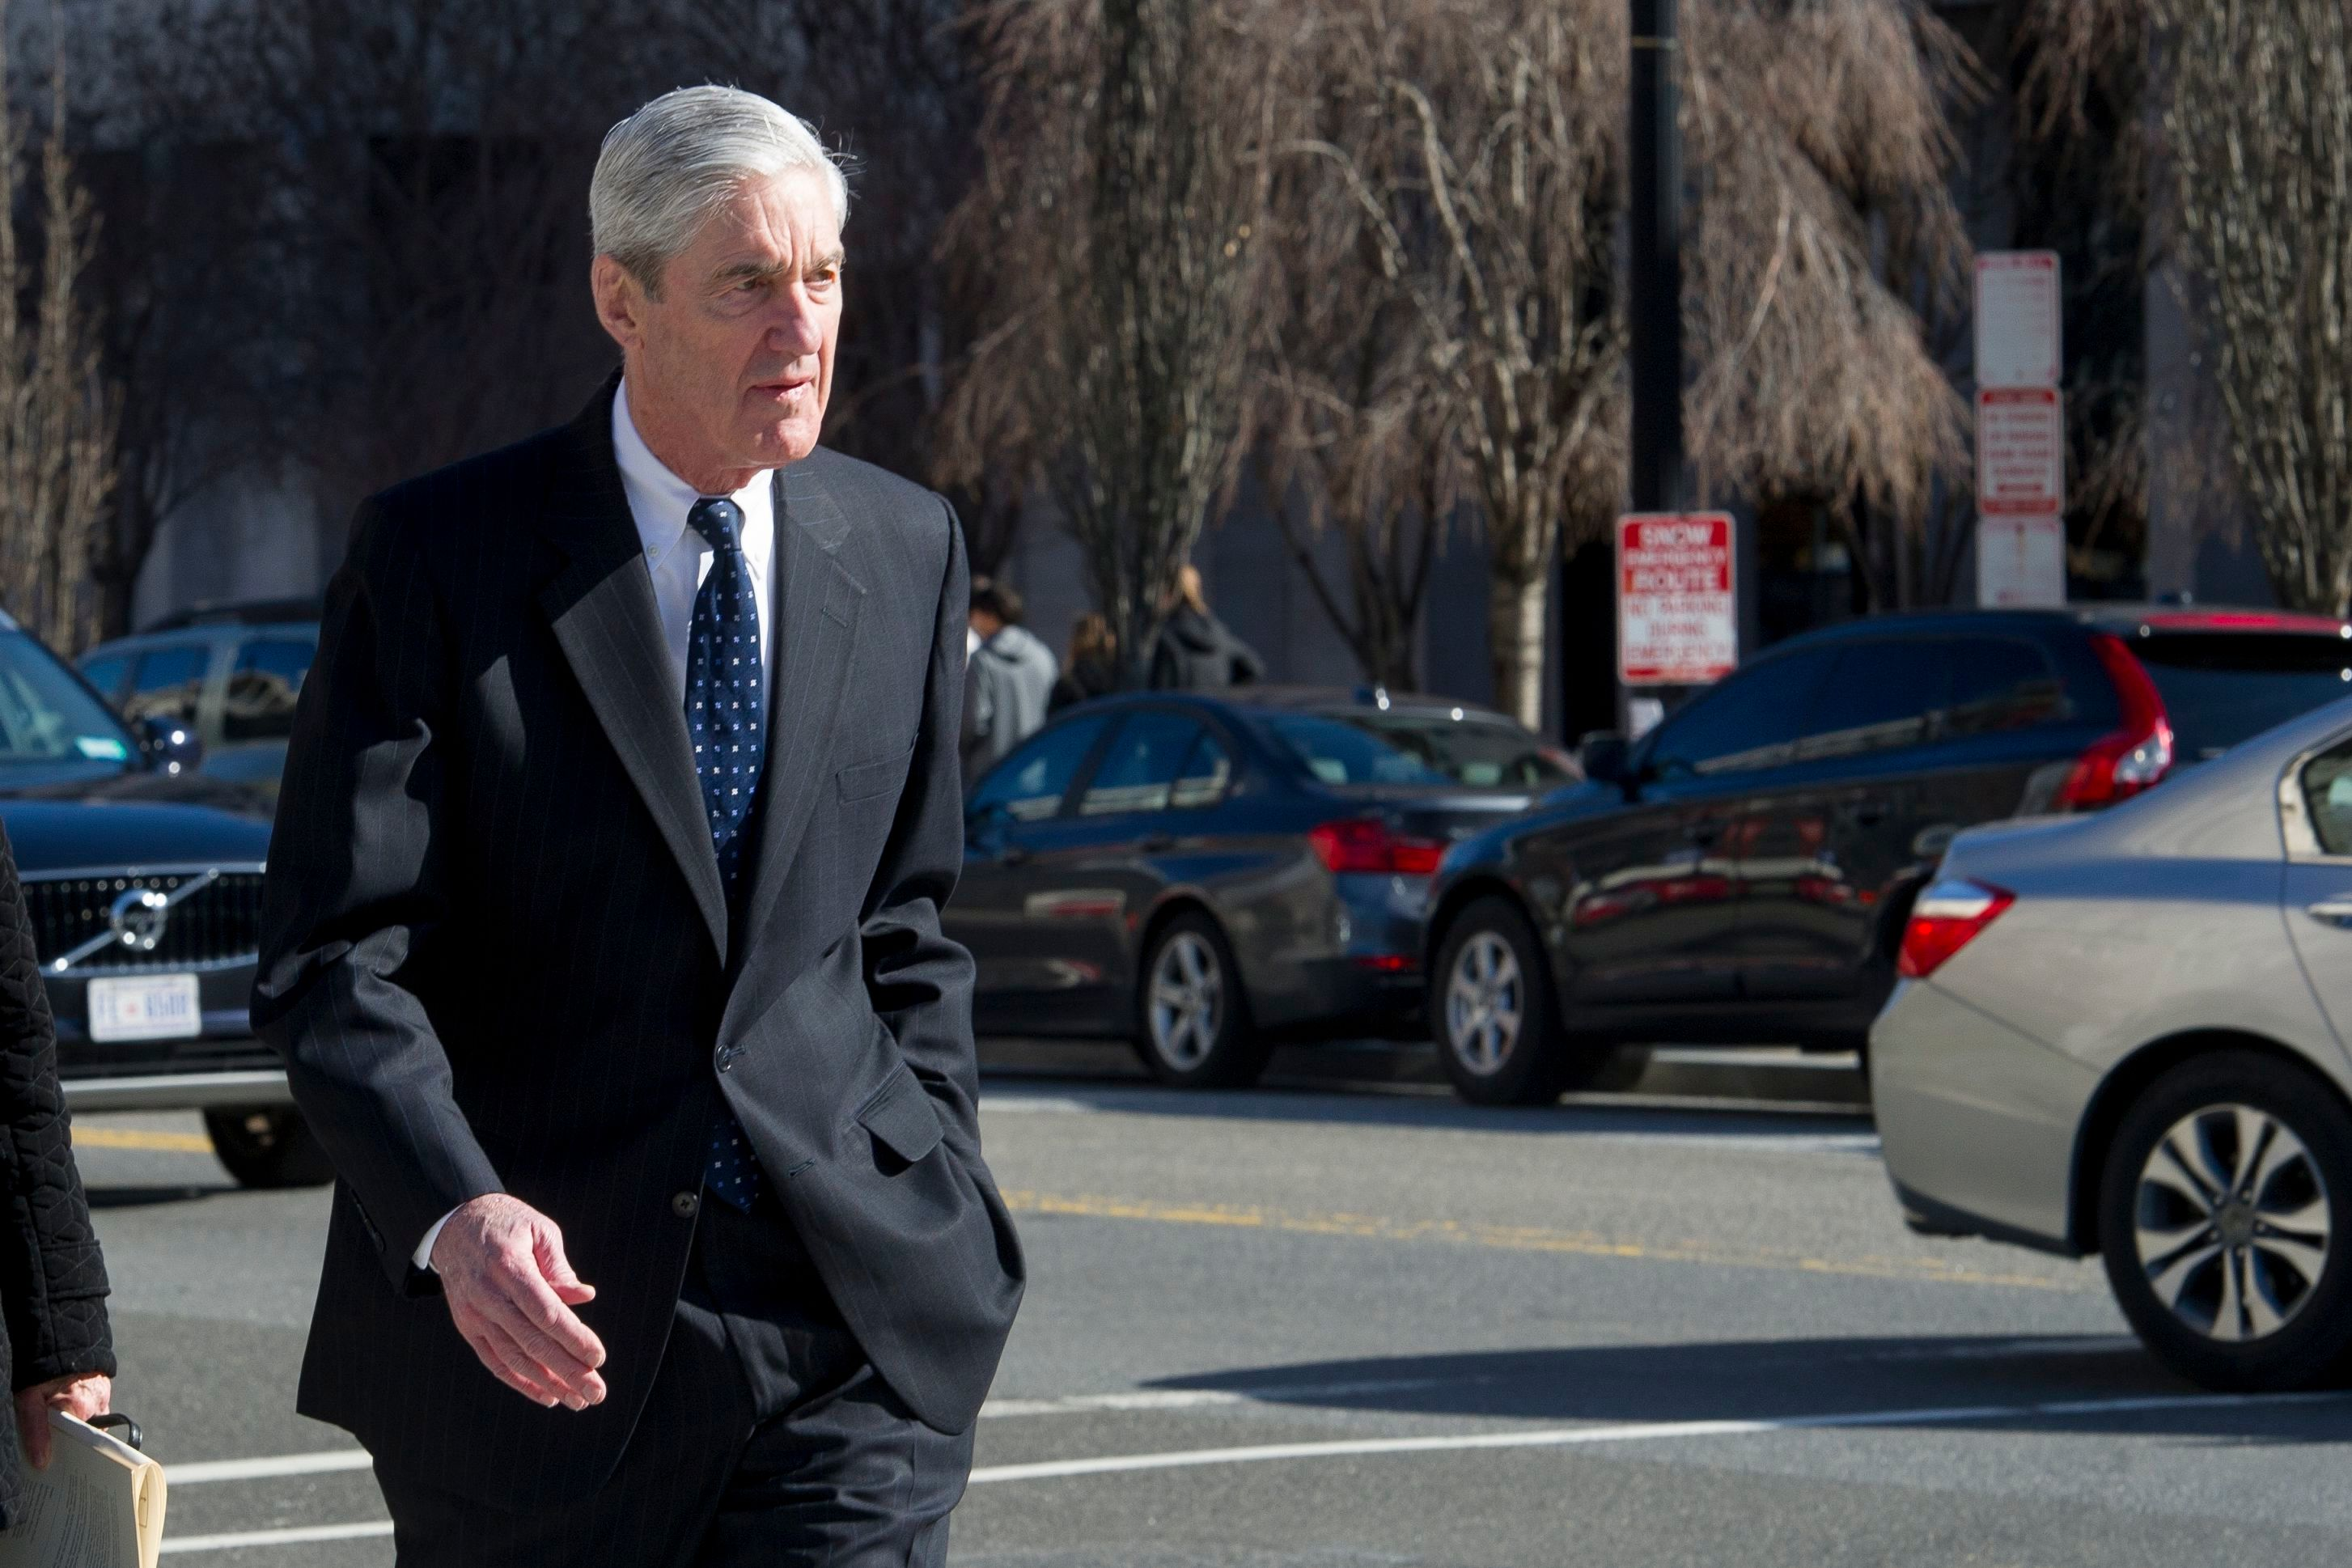 When, If Ever, Will We Read the Full Mueller Report?